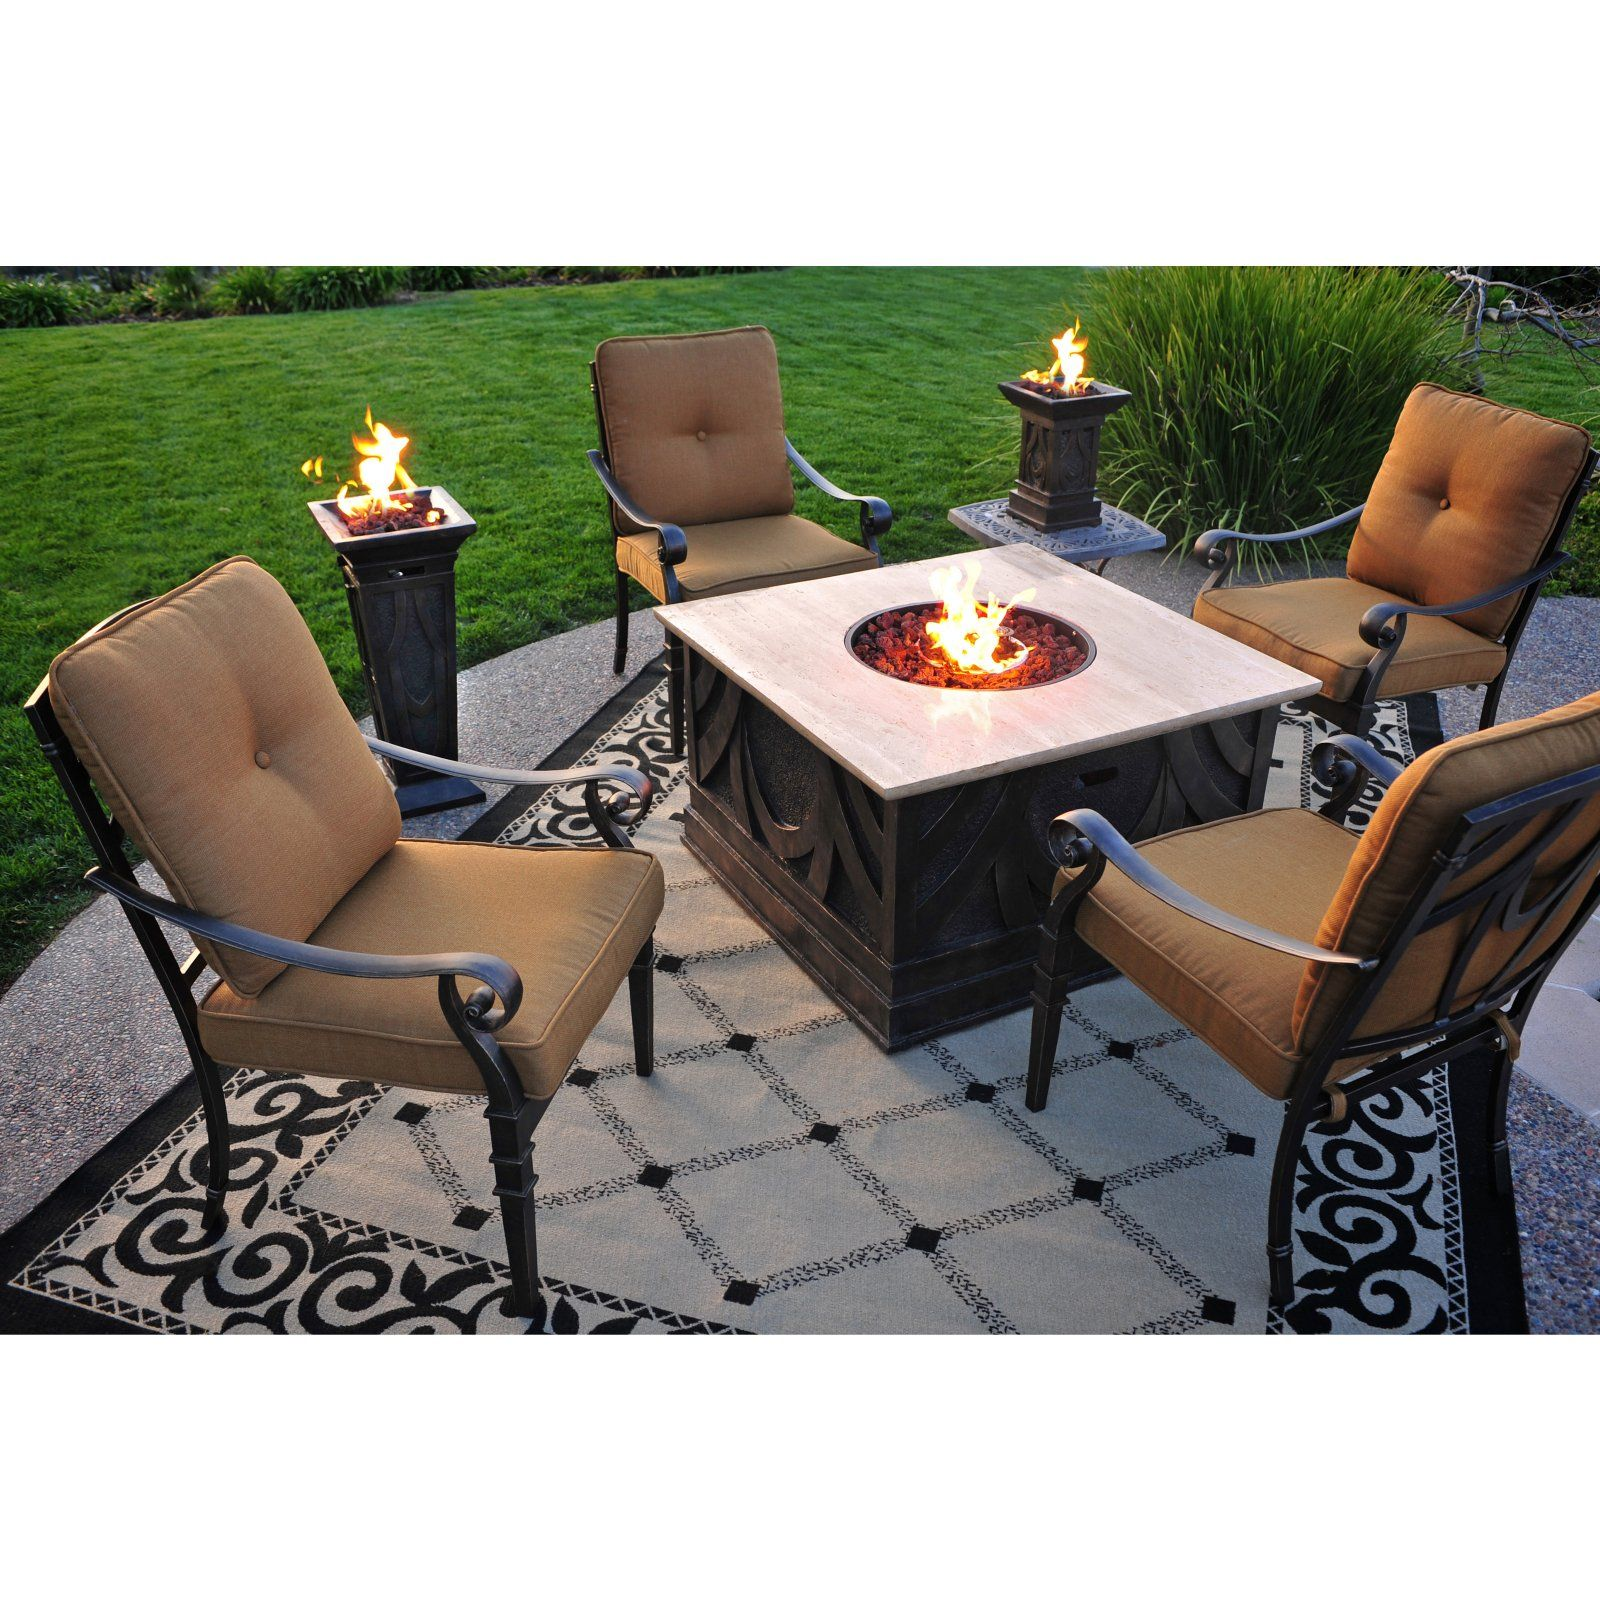 Great and moveable outdoor fire pit coffee table and torches great and moveable outdoor fire pit coffee table and torches geotapseo Gallery